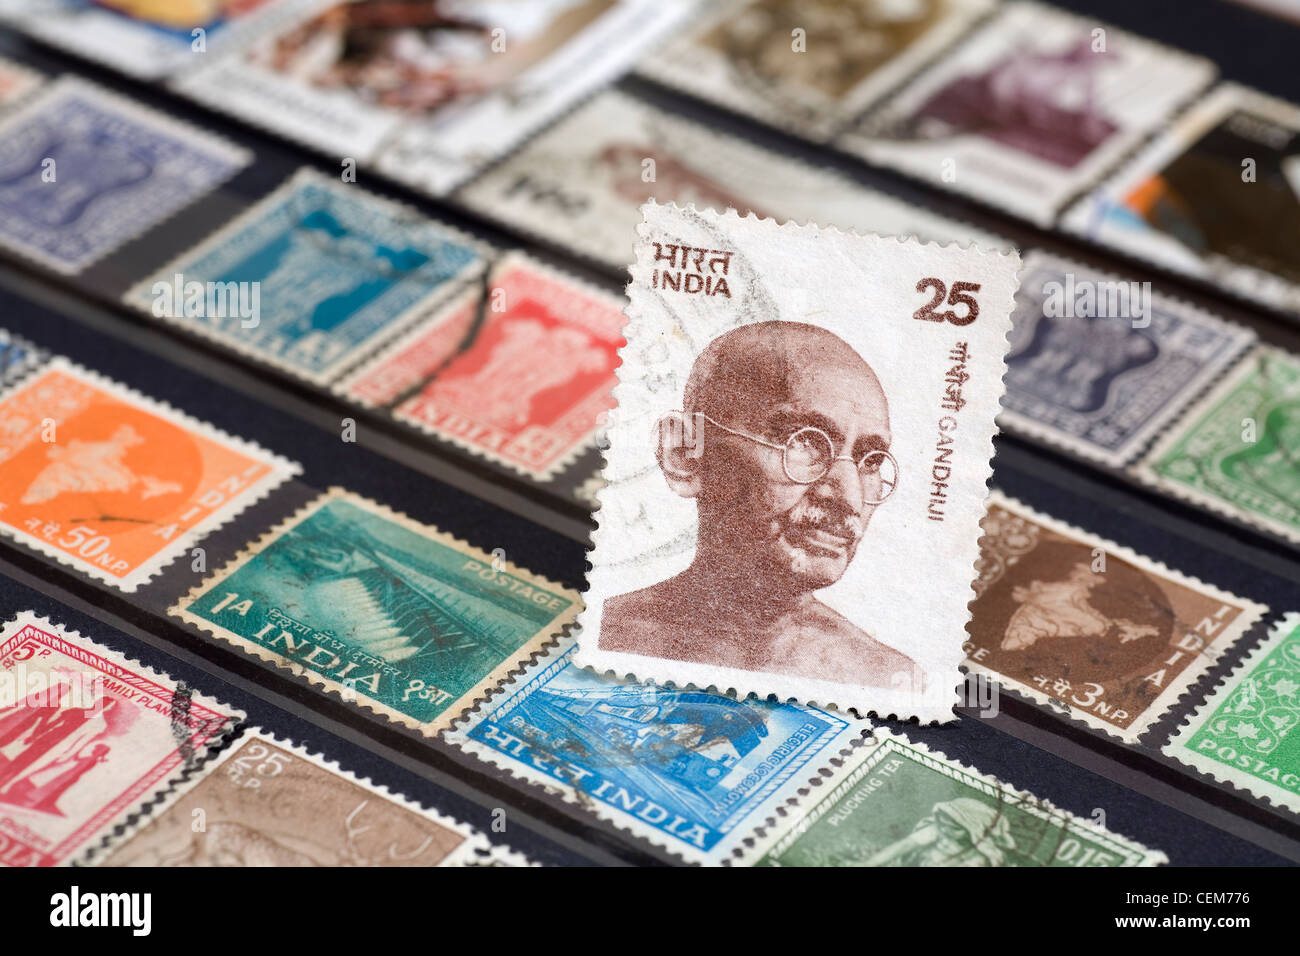 Indian postage stamp showing Ghandi - Stock Image